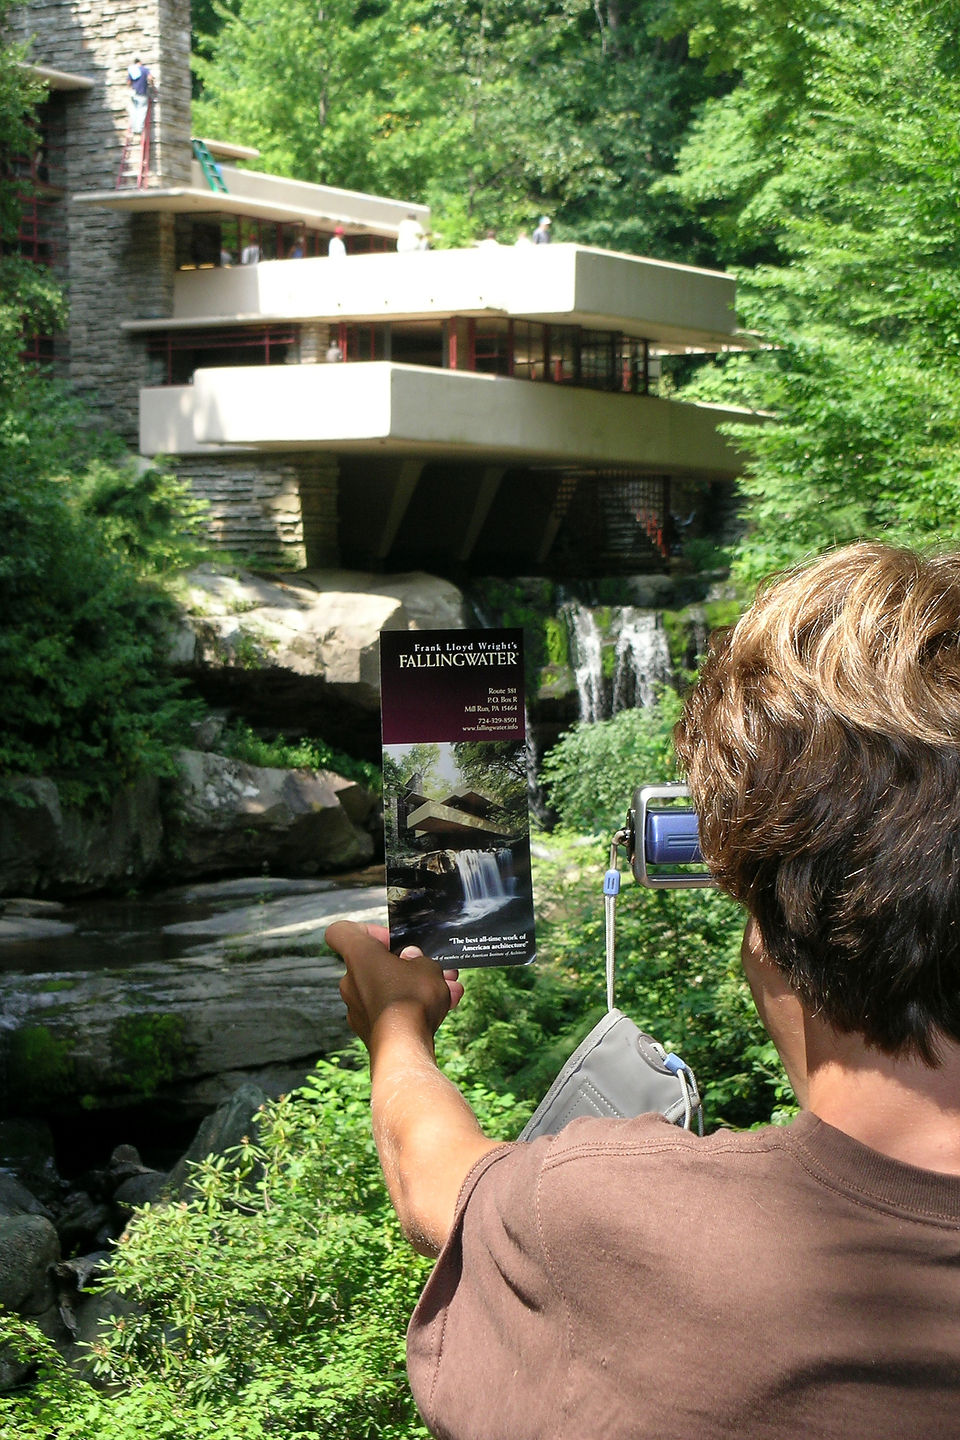 Tommy photographing Fallingwater